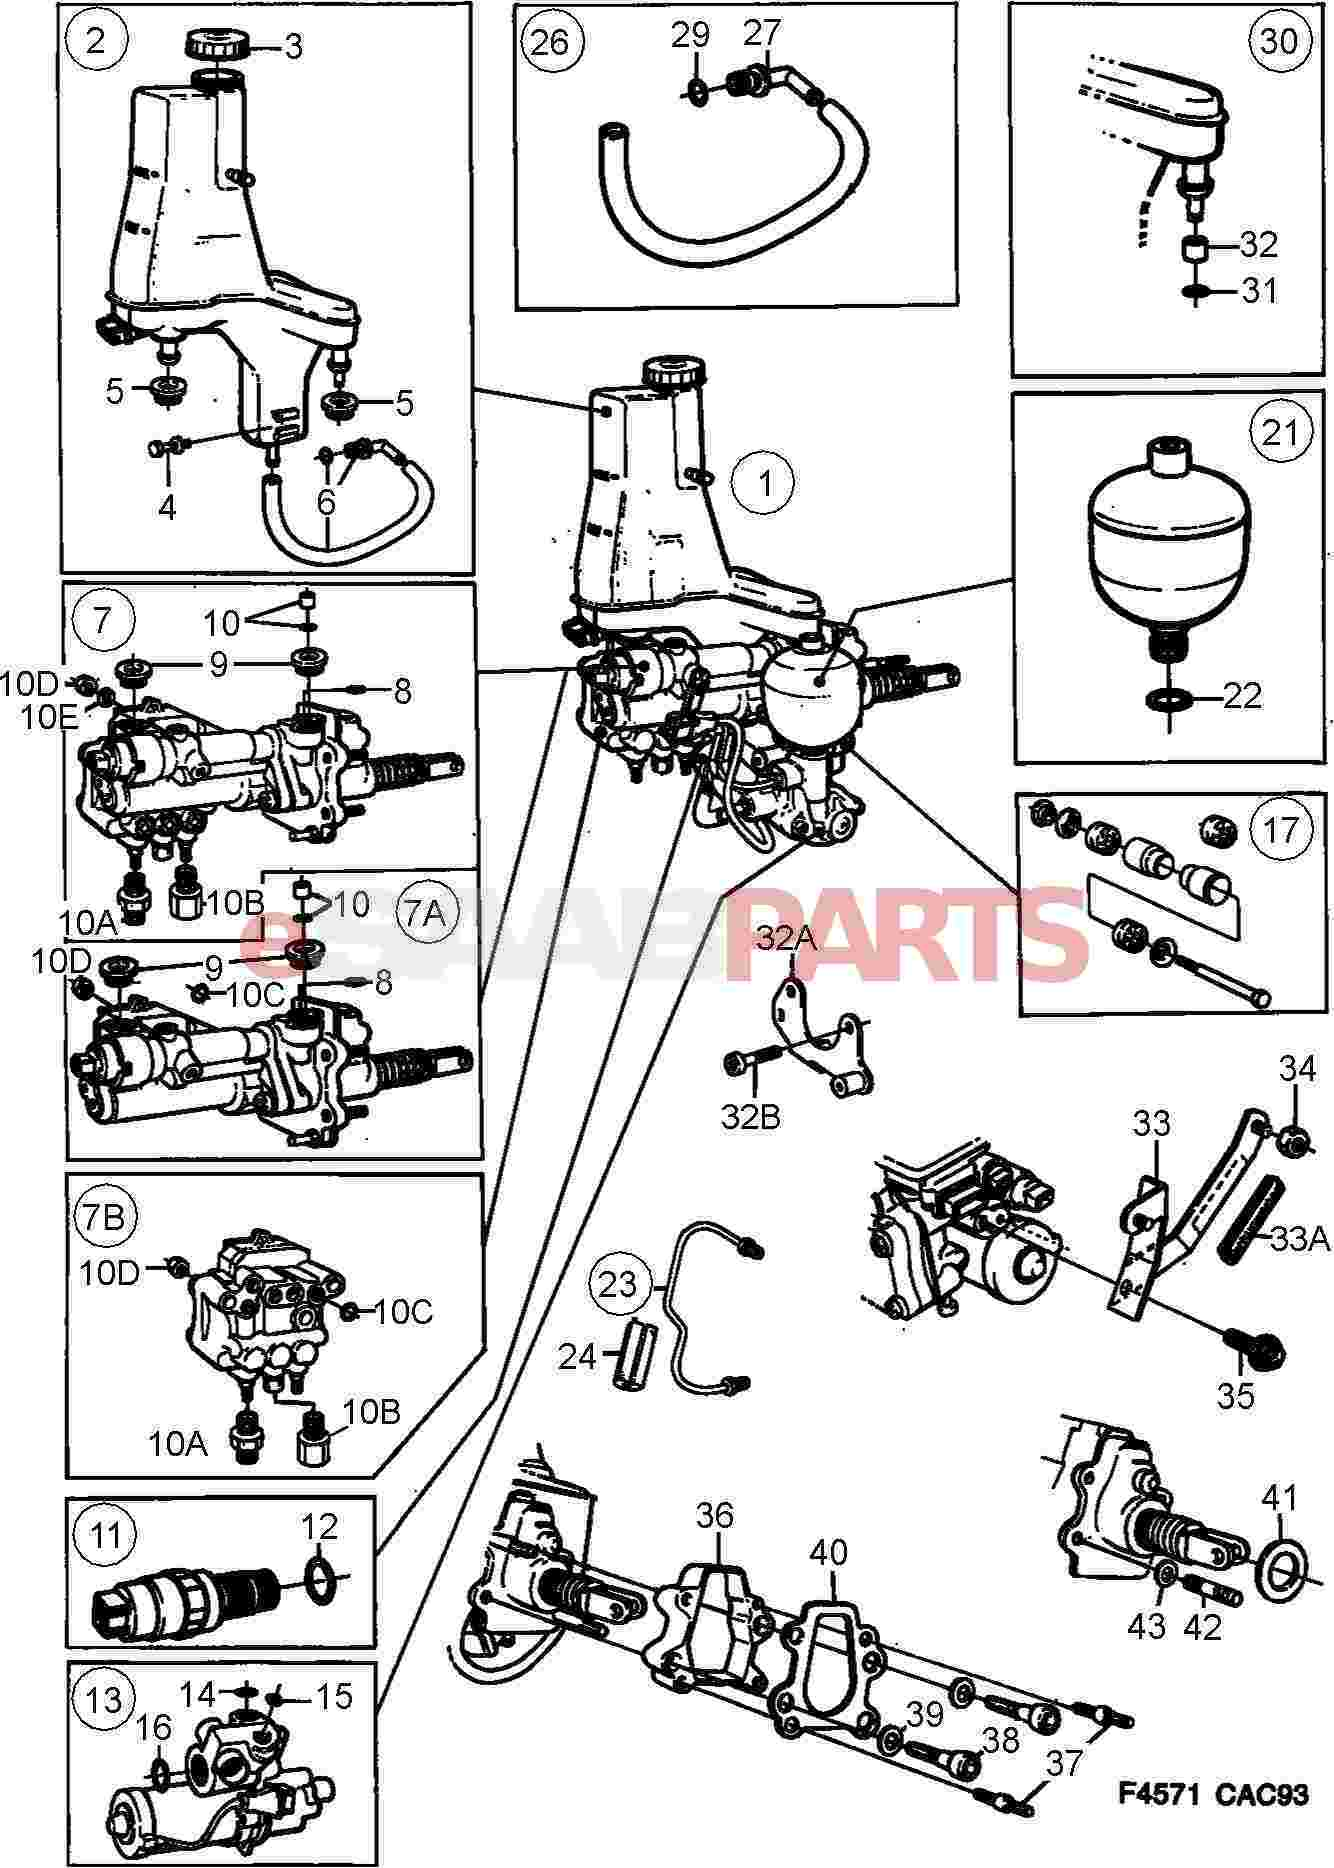 1995 saab 900 convertible wiring diagram wiring diagram